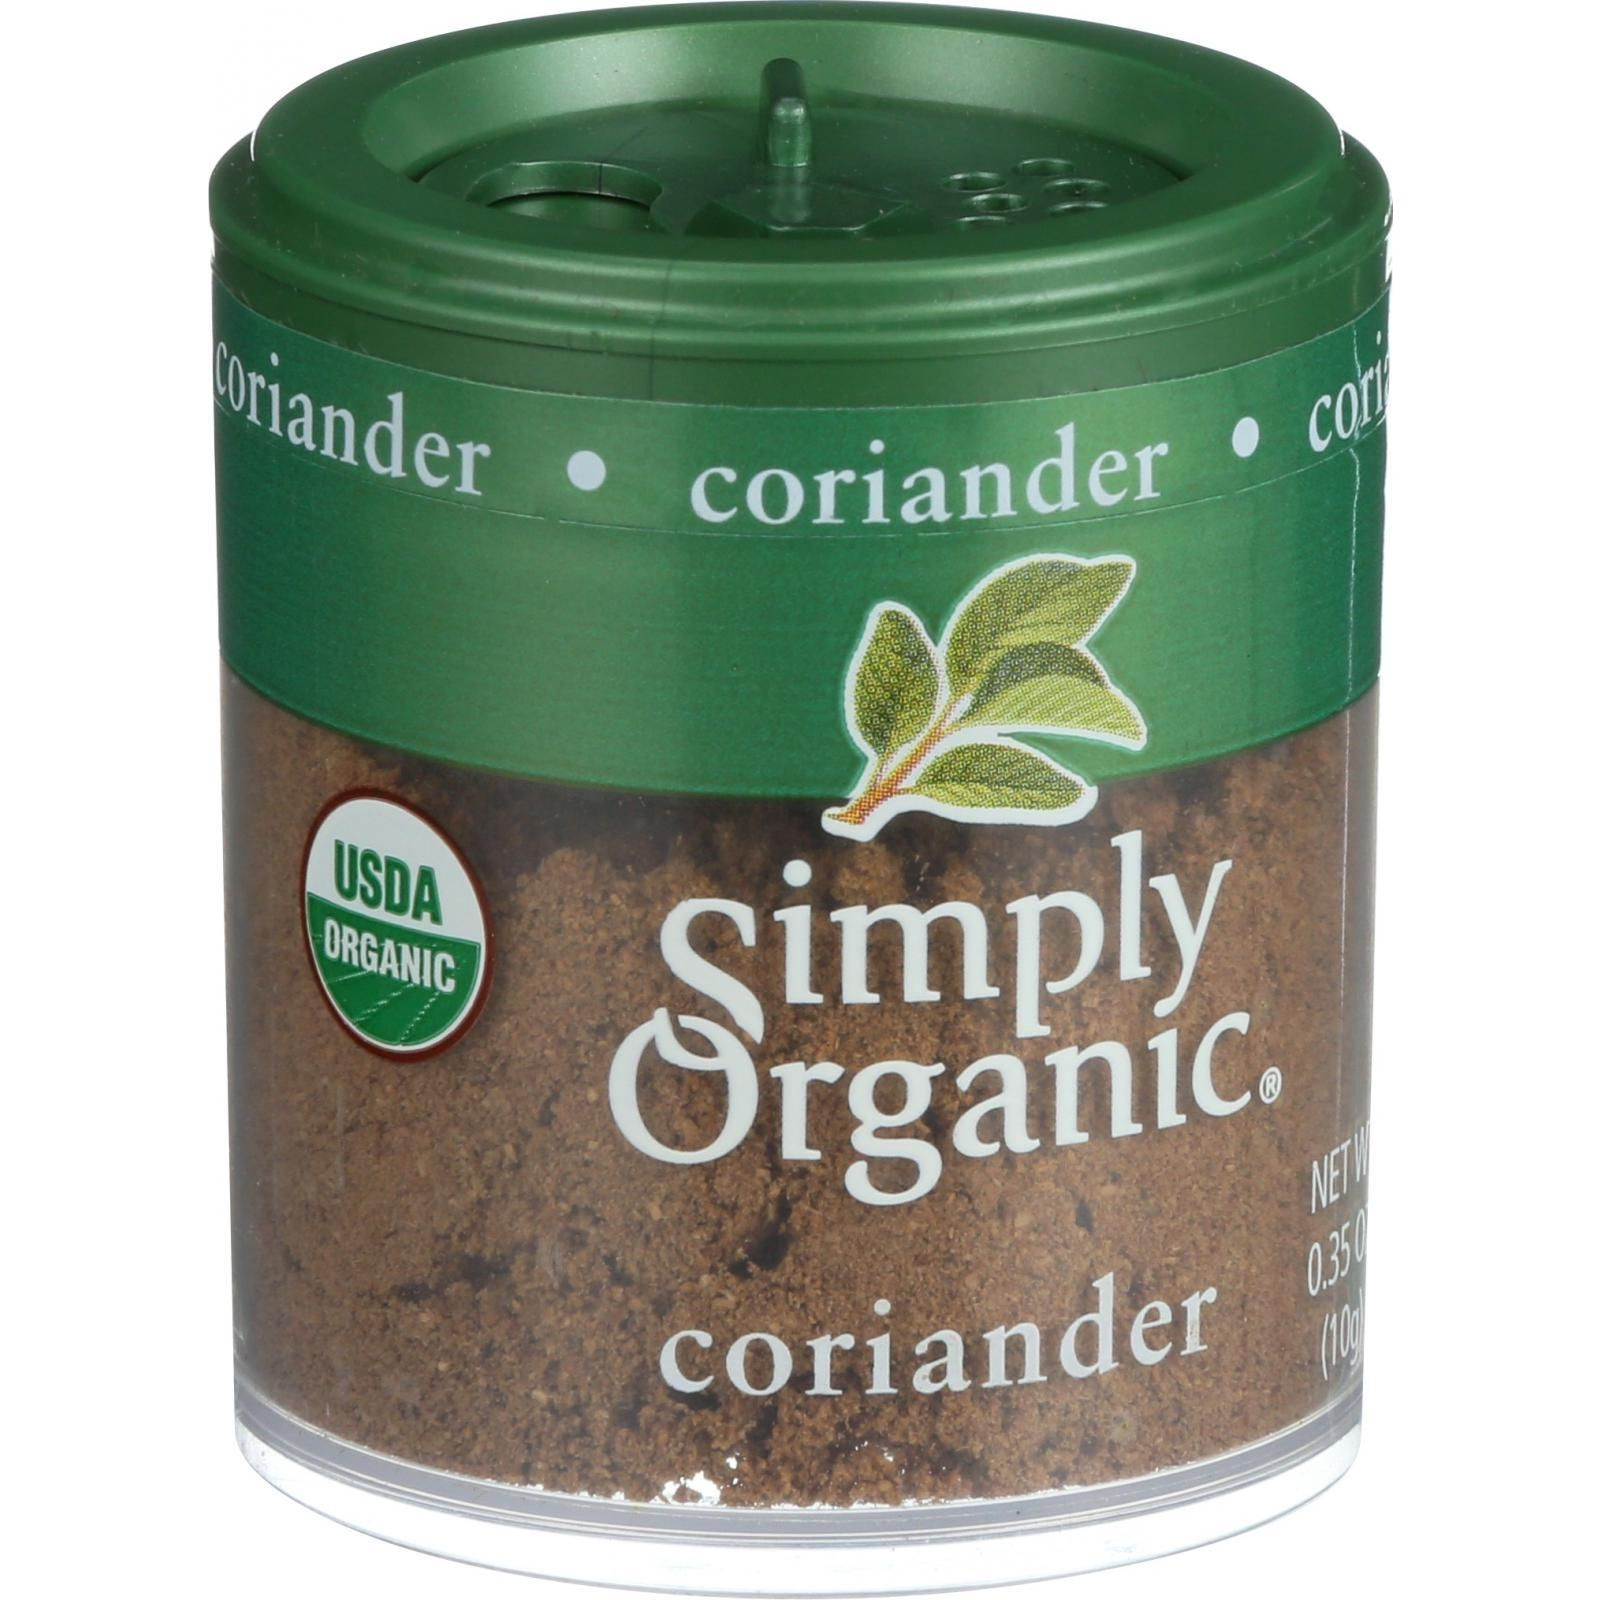 Simply Organic Coriander Seed - Organic - Ground - .35 Oz - Case Of 6